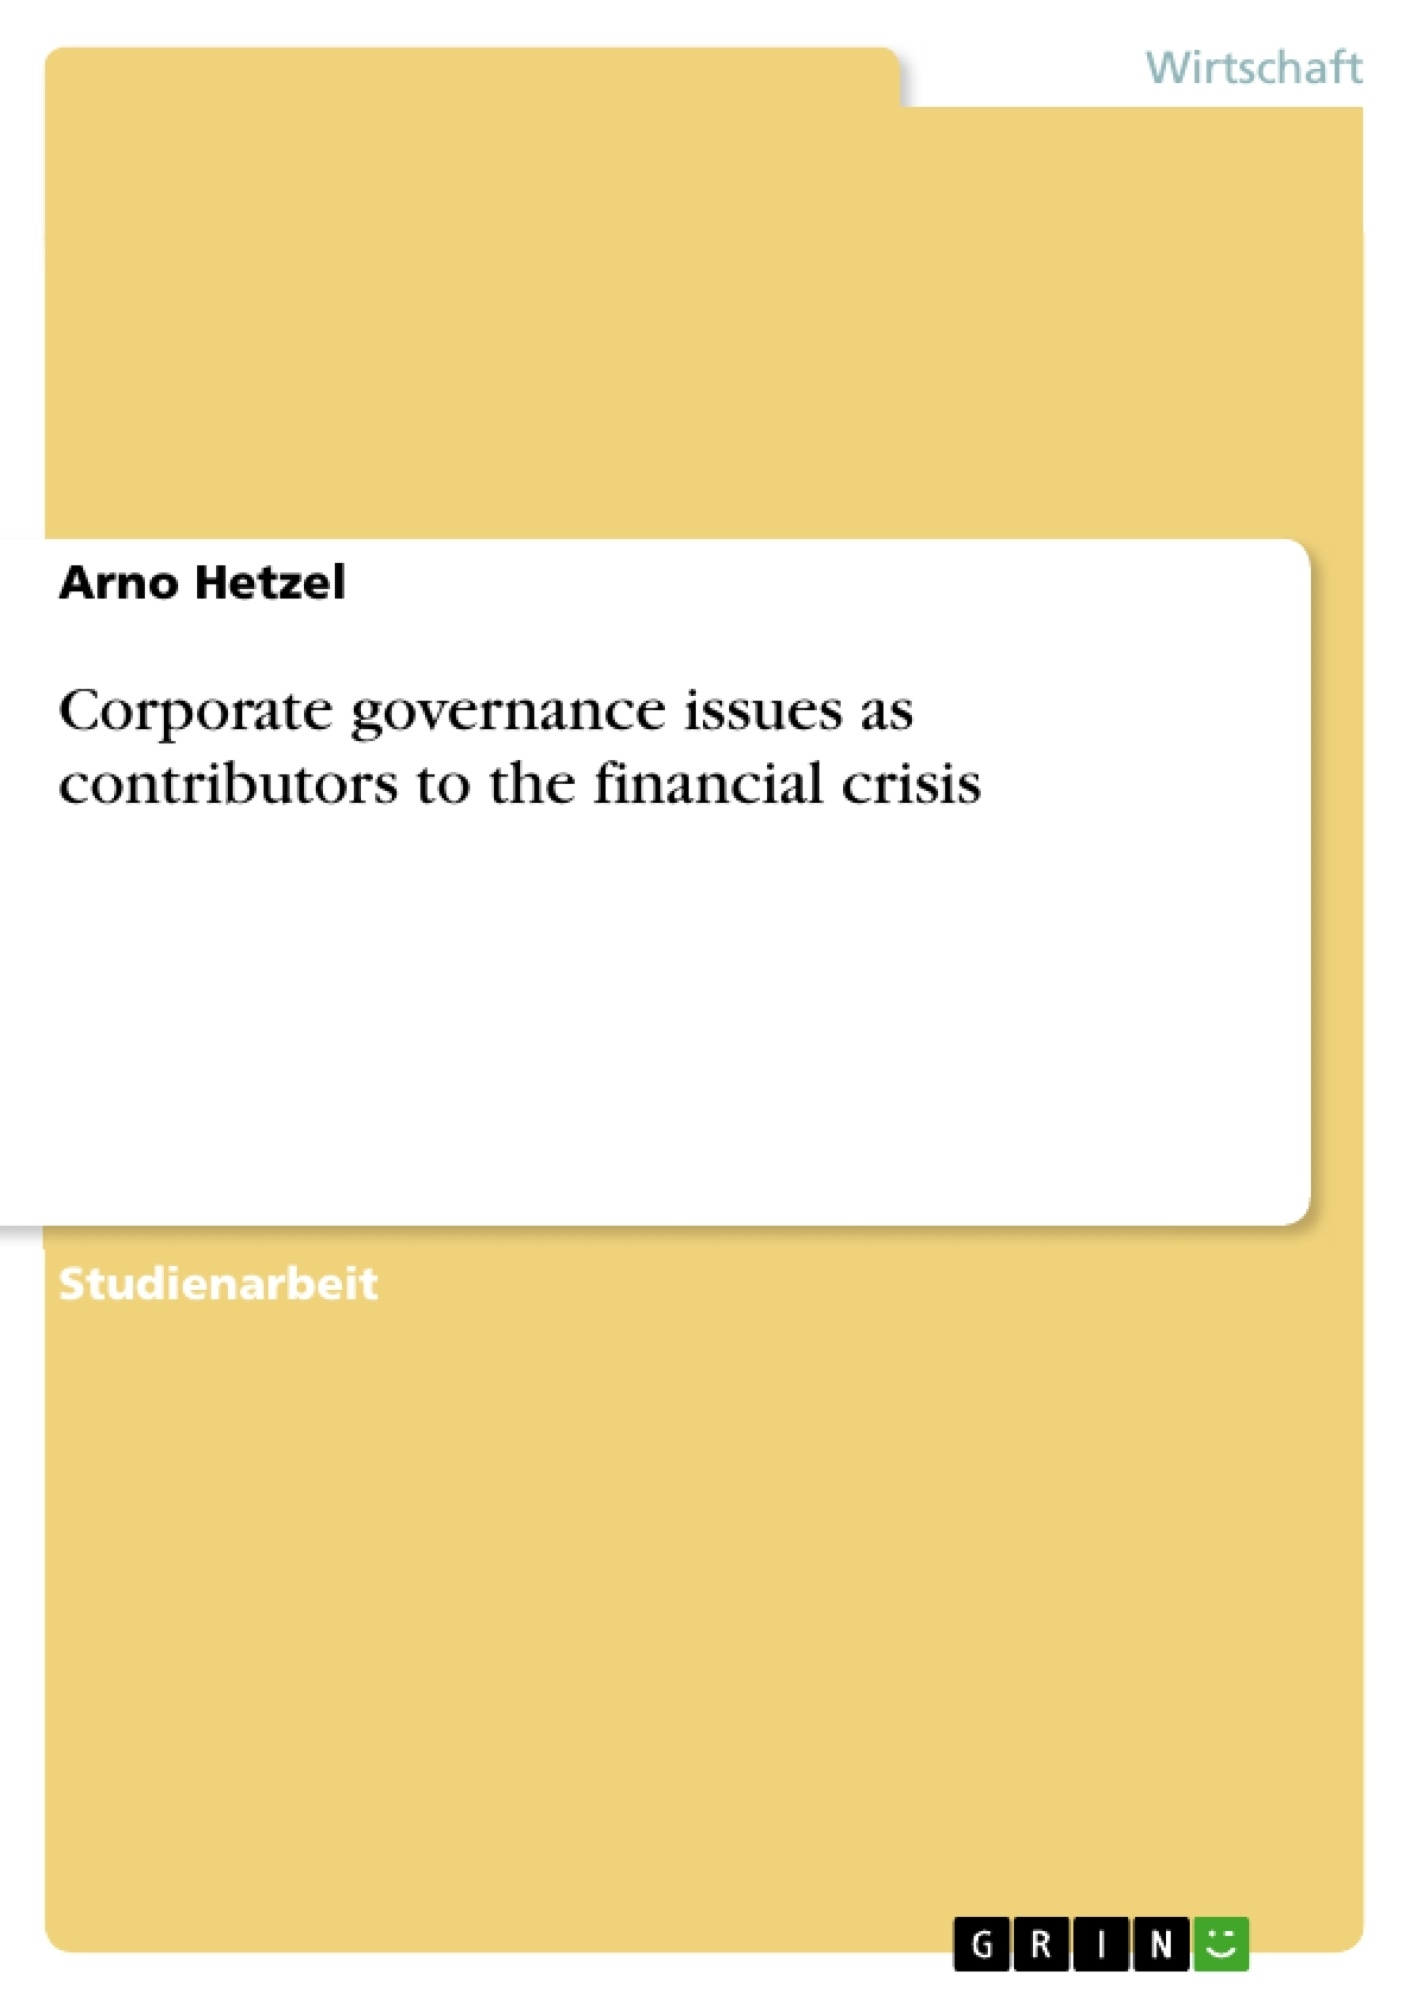 Titel: Corporate governance issues as contributors to the financial crisis